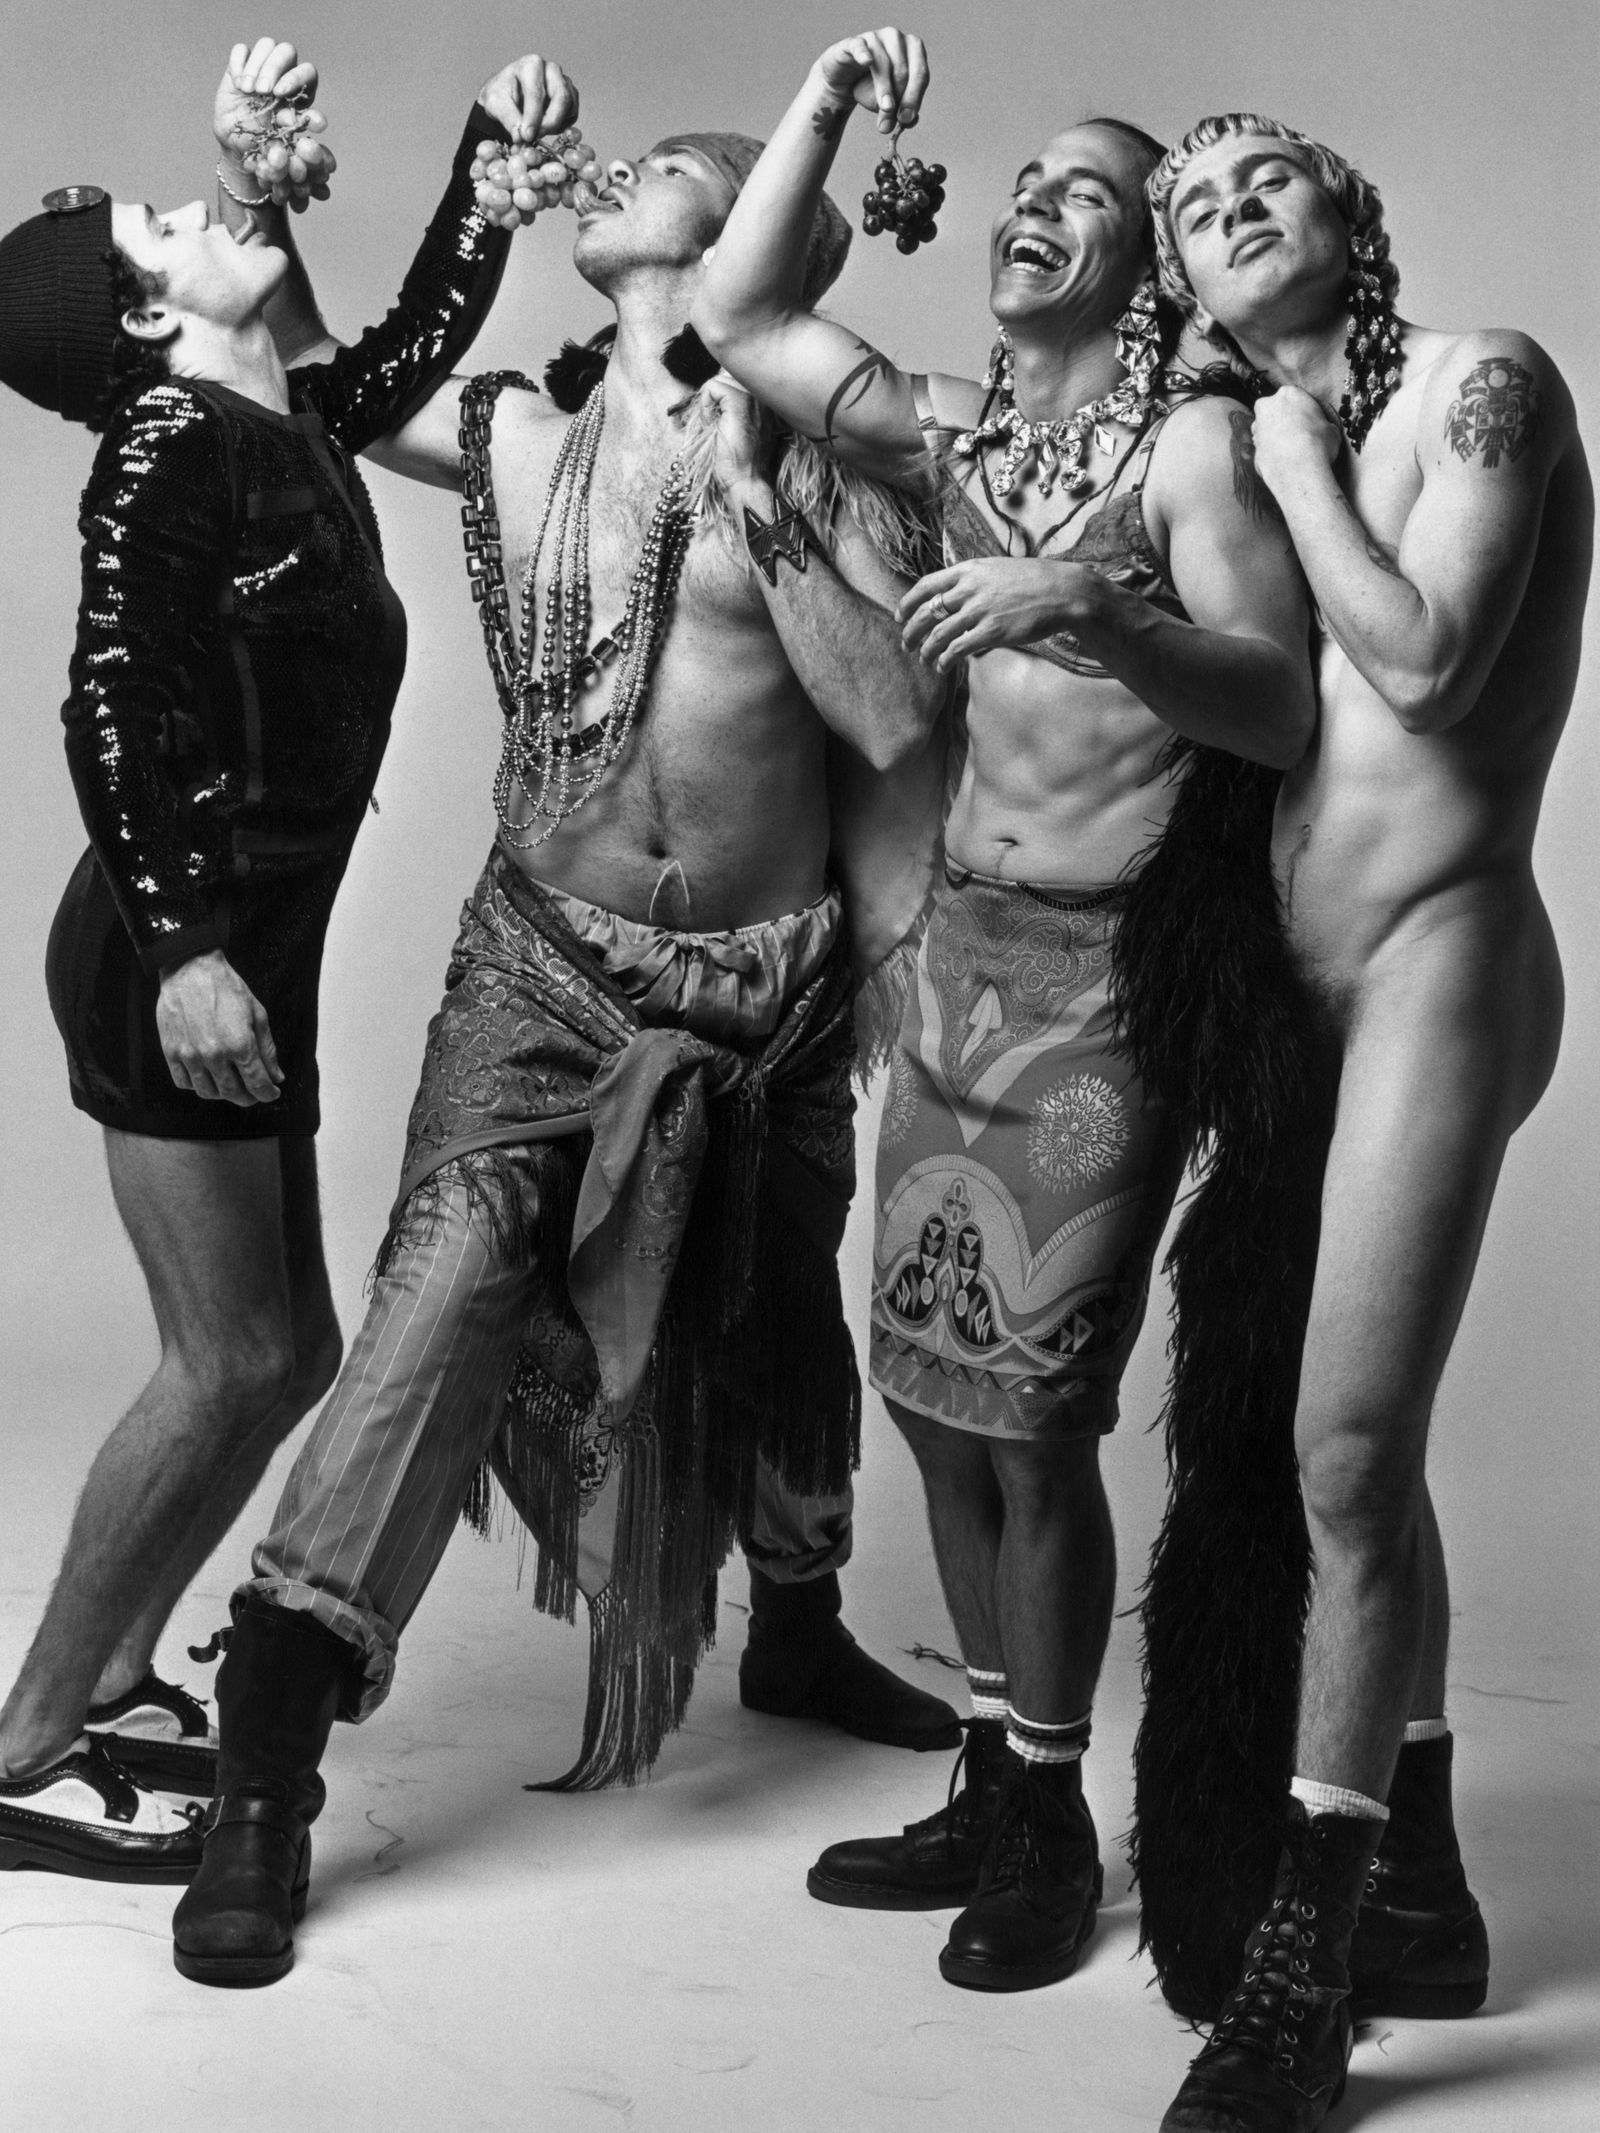 Must-See '90s Photos of Your Favorite Celebs | Red hot chili peppers  poster, Stuffed peppers, Red hot chili peppers